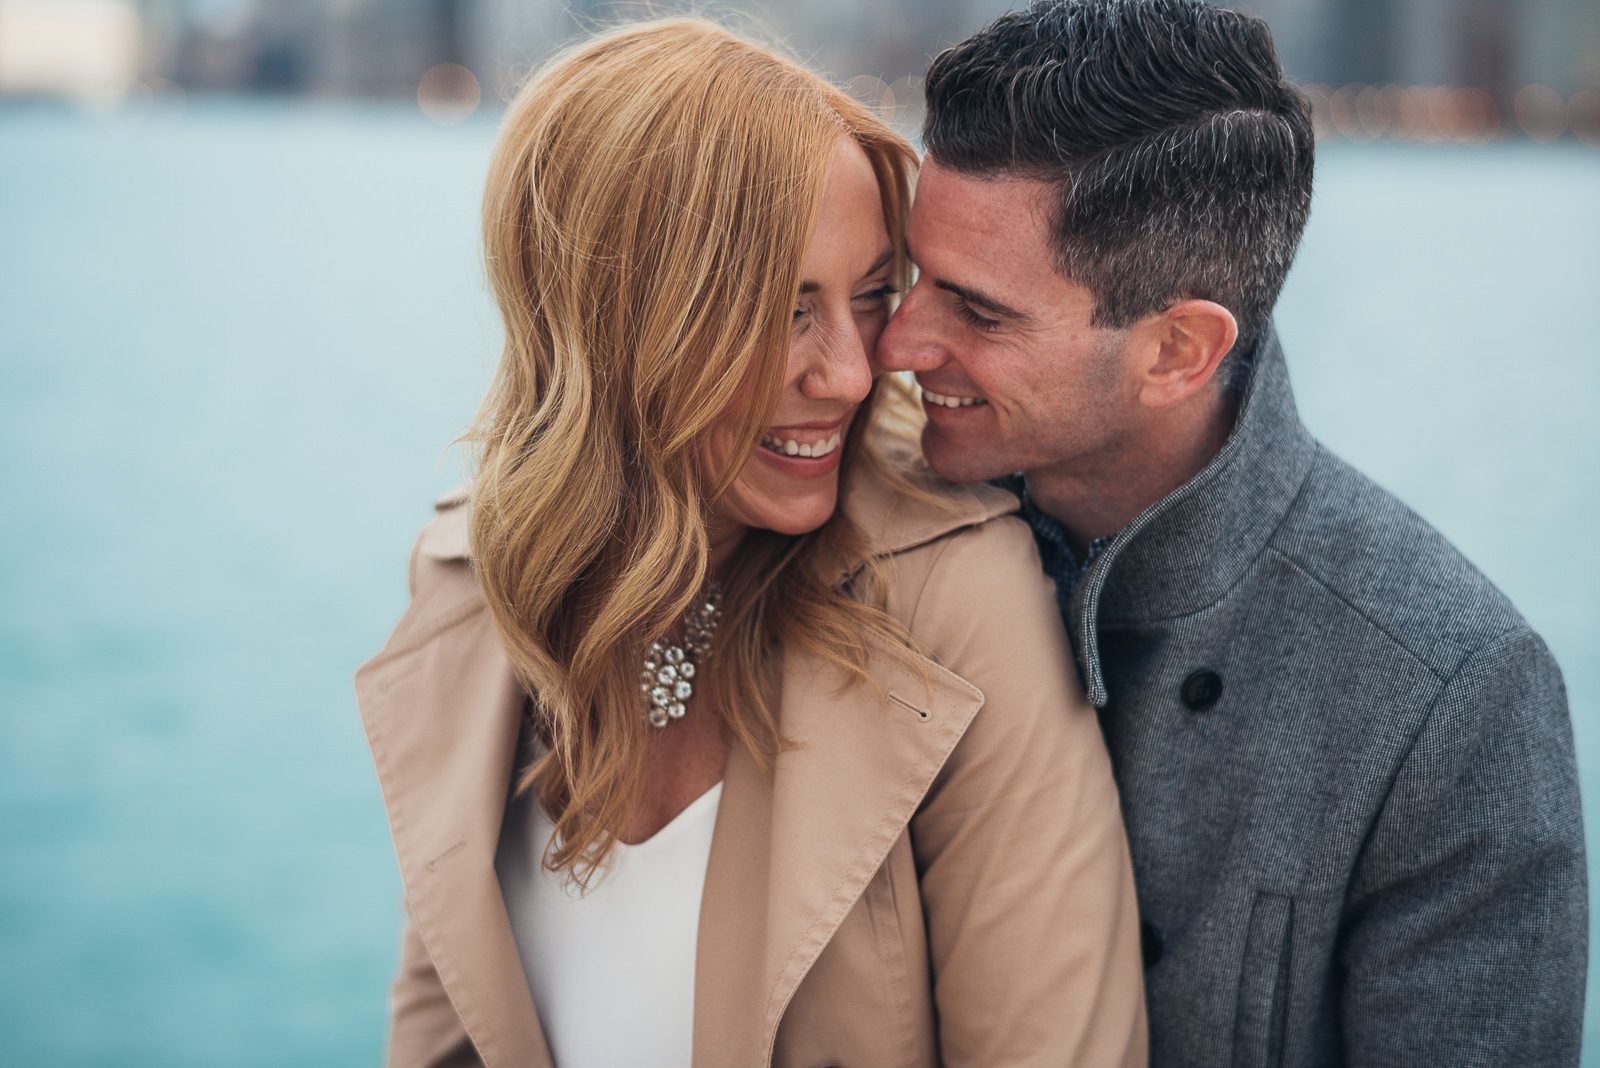 04 chicago beach engagement pics - Megan + Bob // Chicago River North Engagement Session at Shaws Crab House